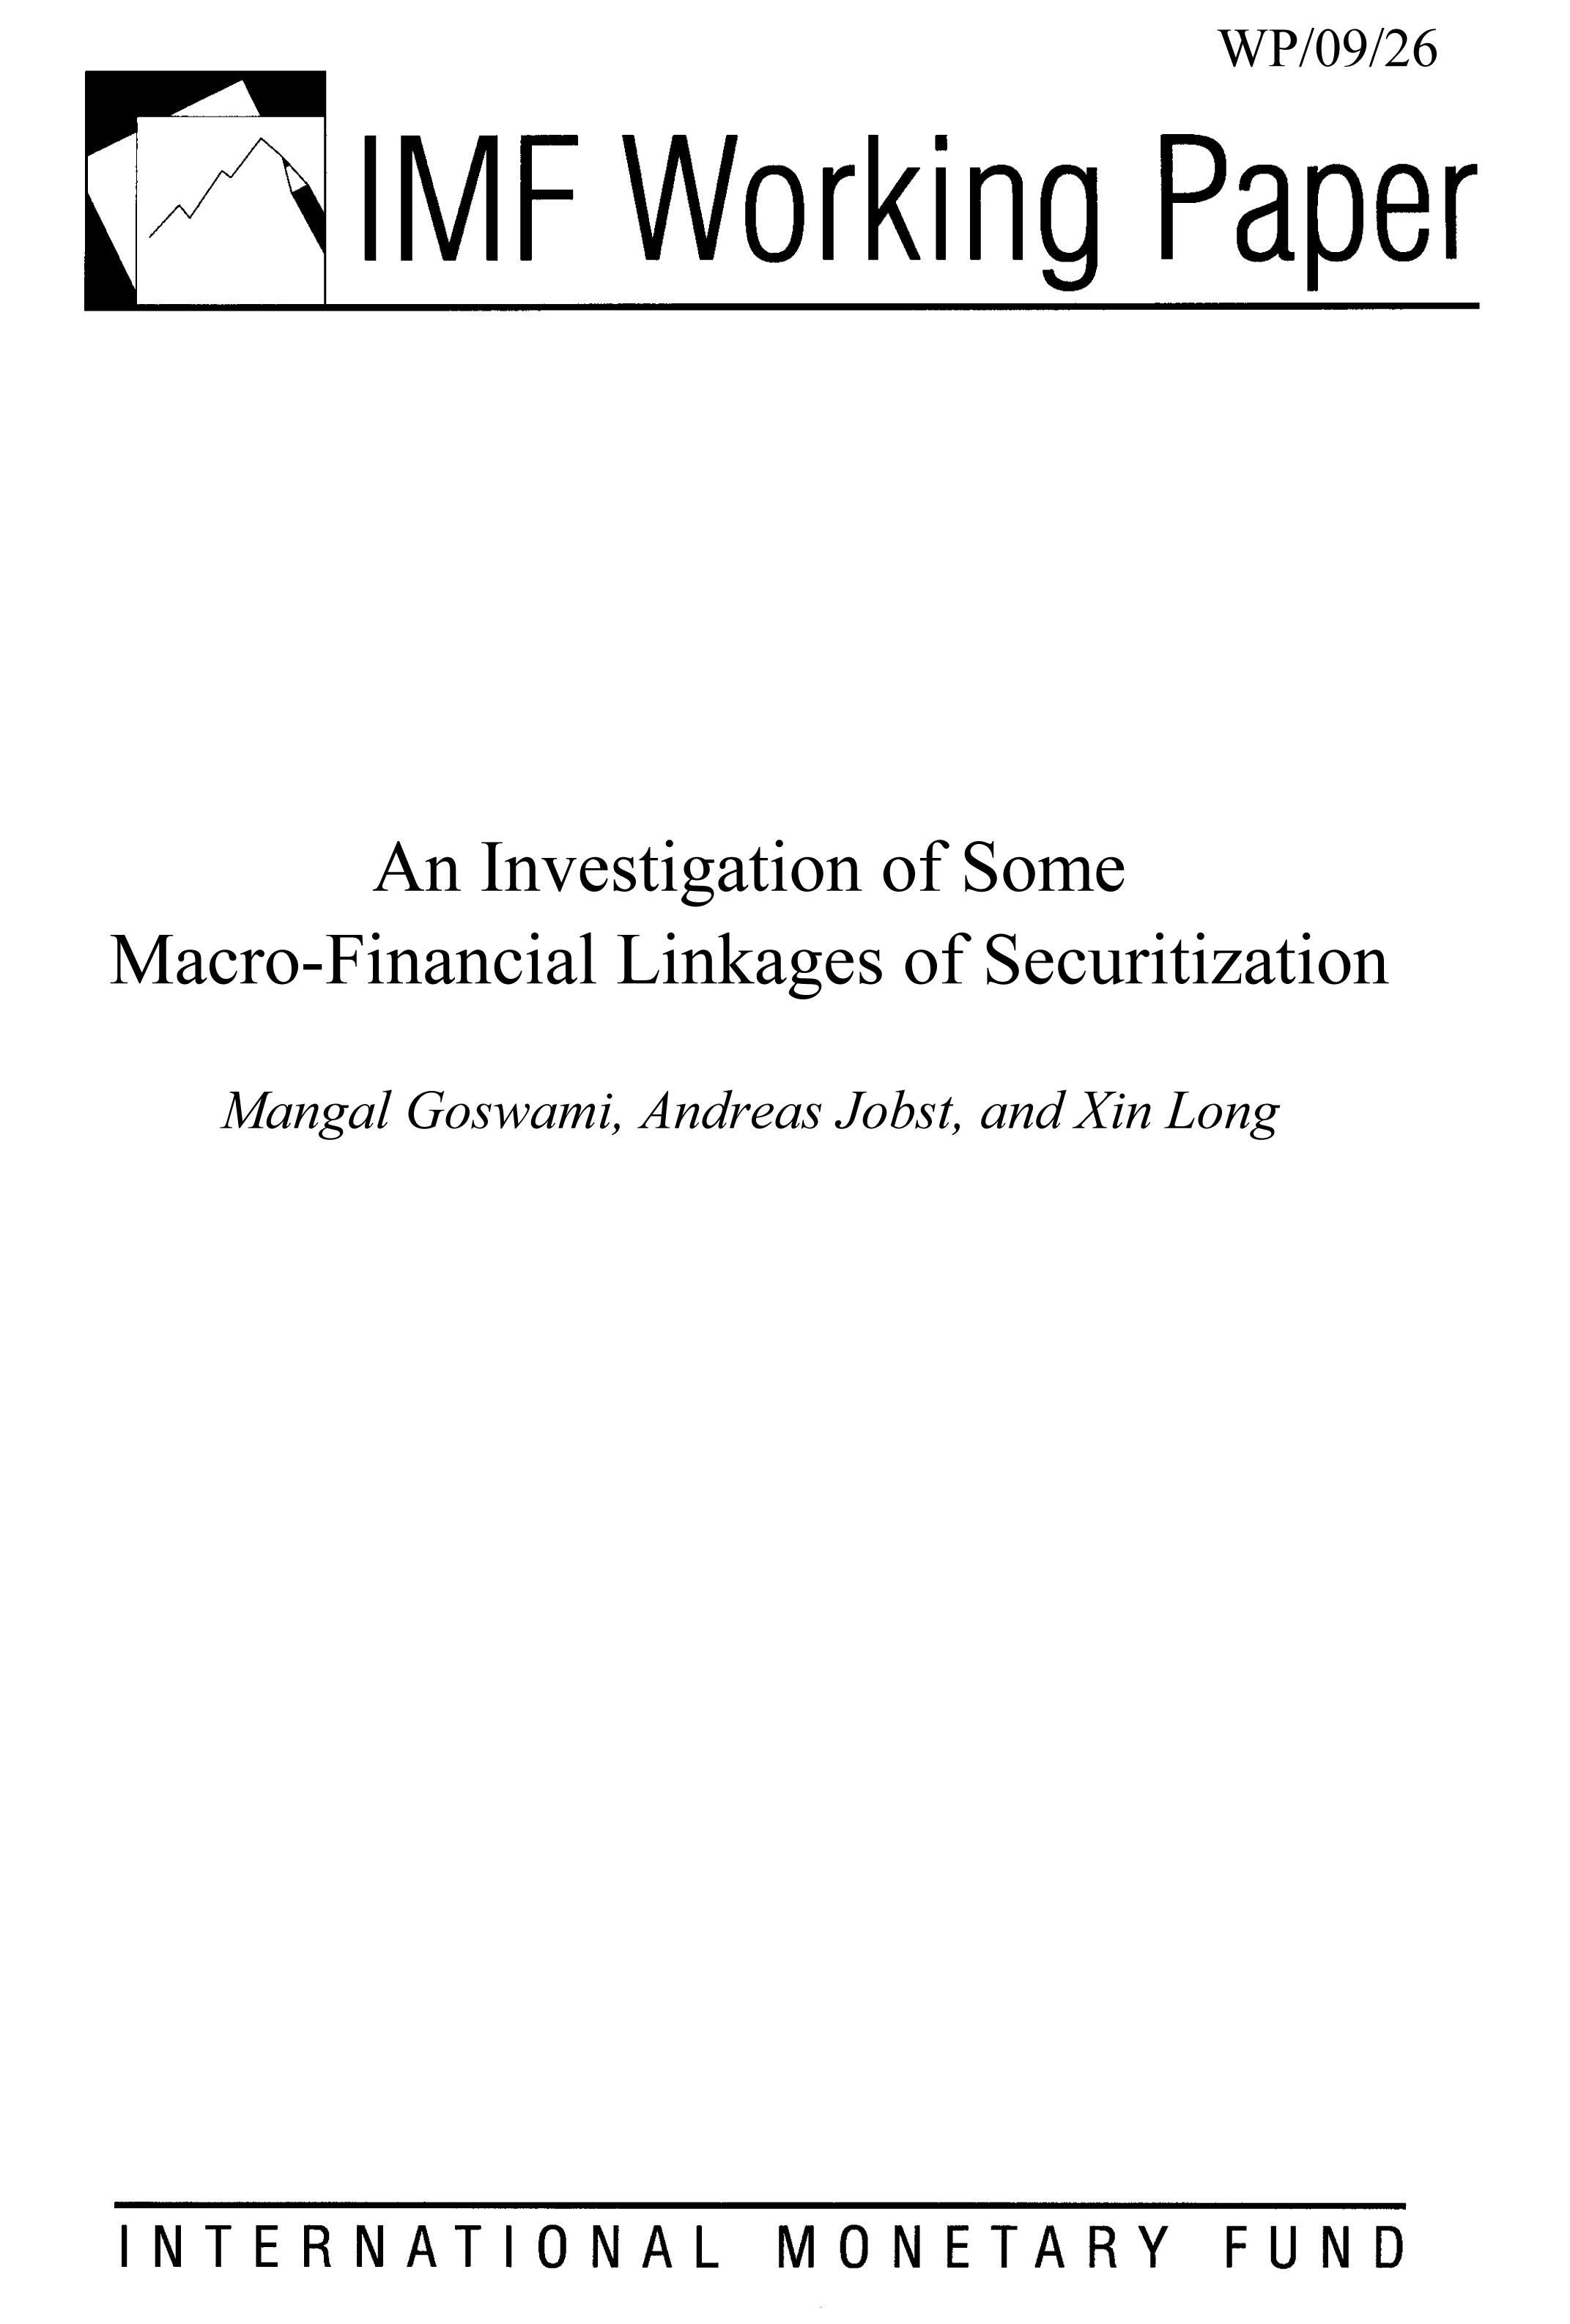 An Investigation of Some Macro-Financial Linkages of Securitization